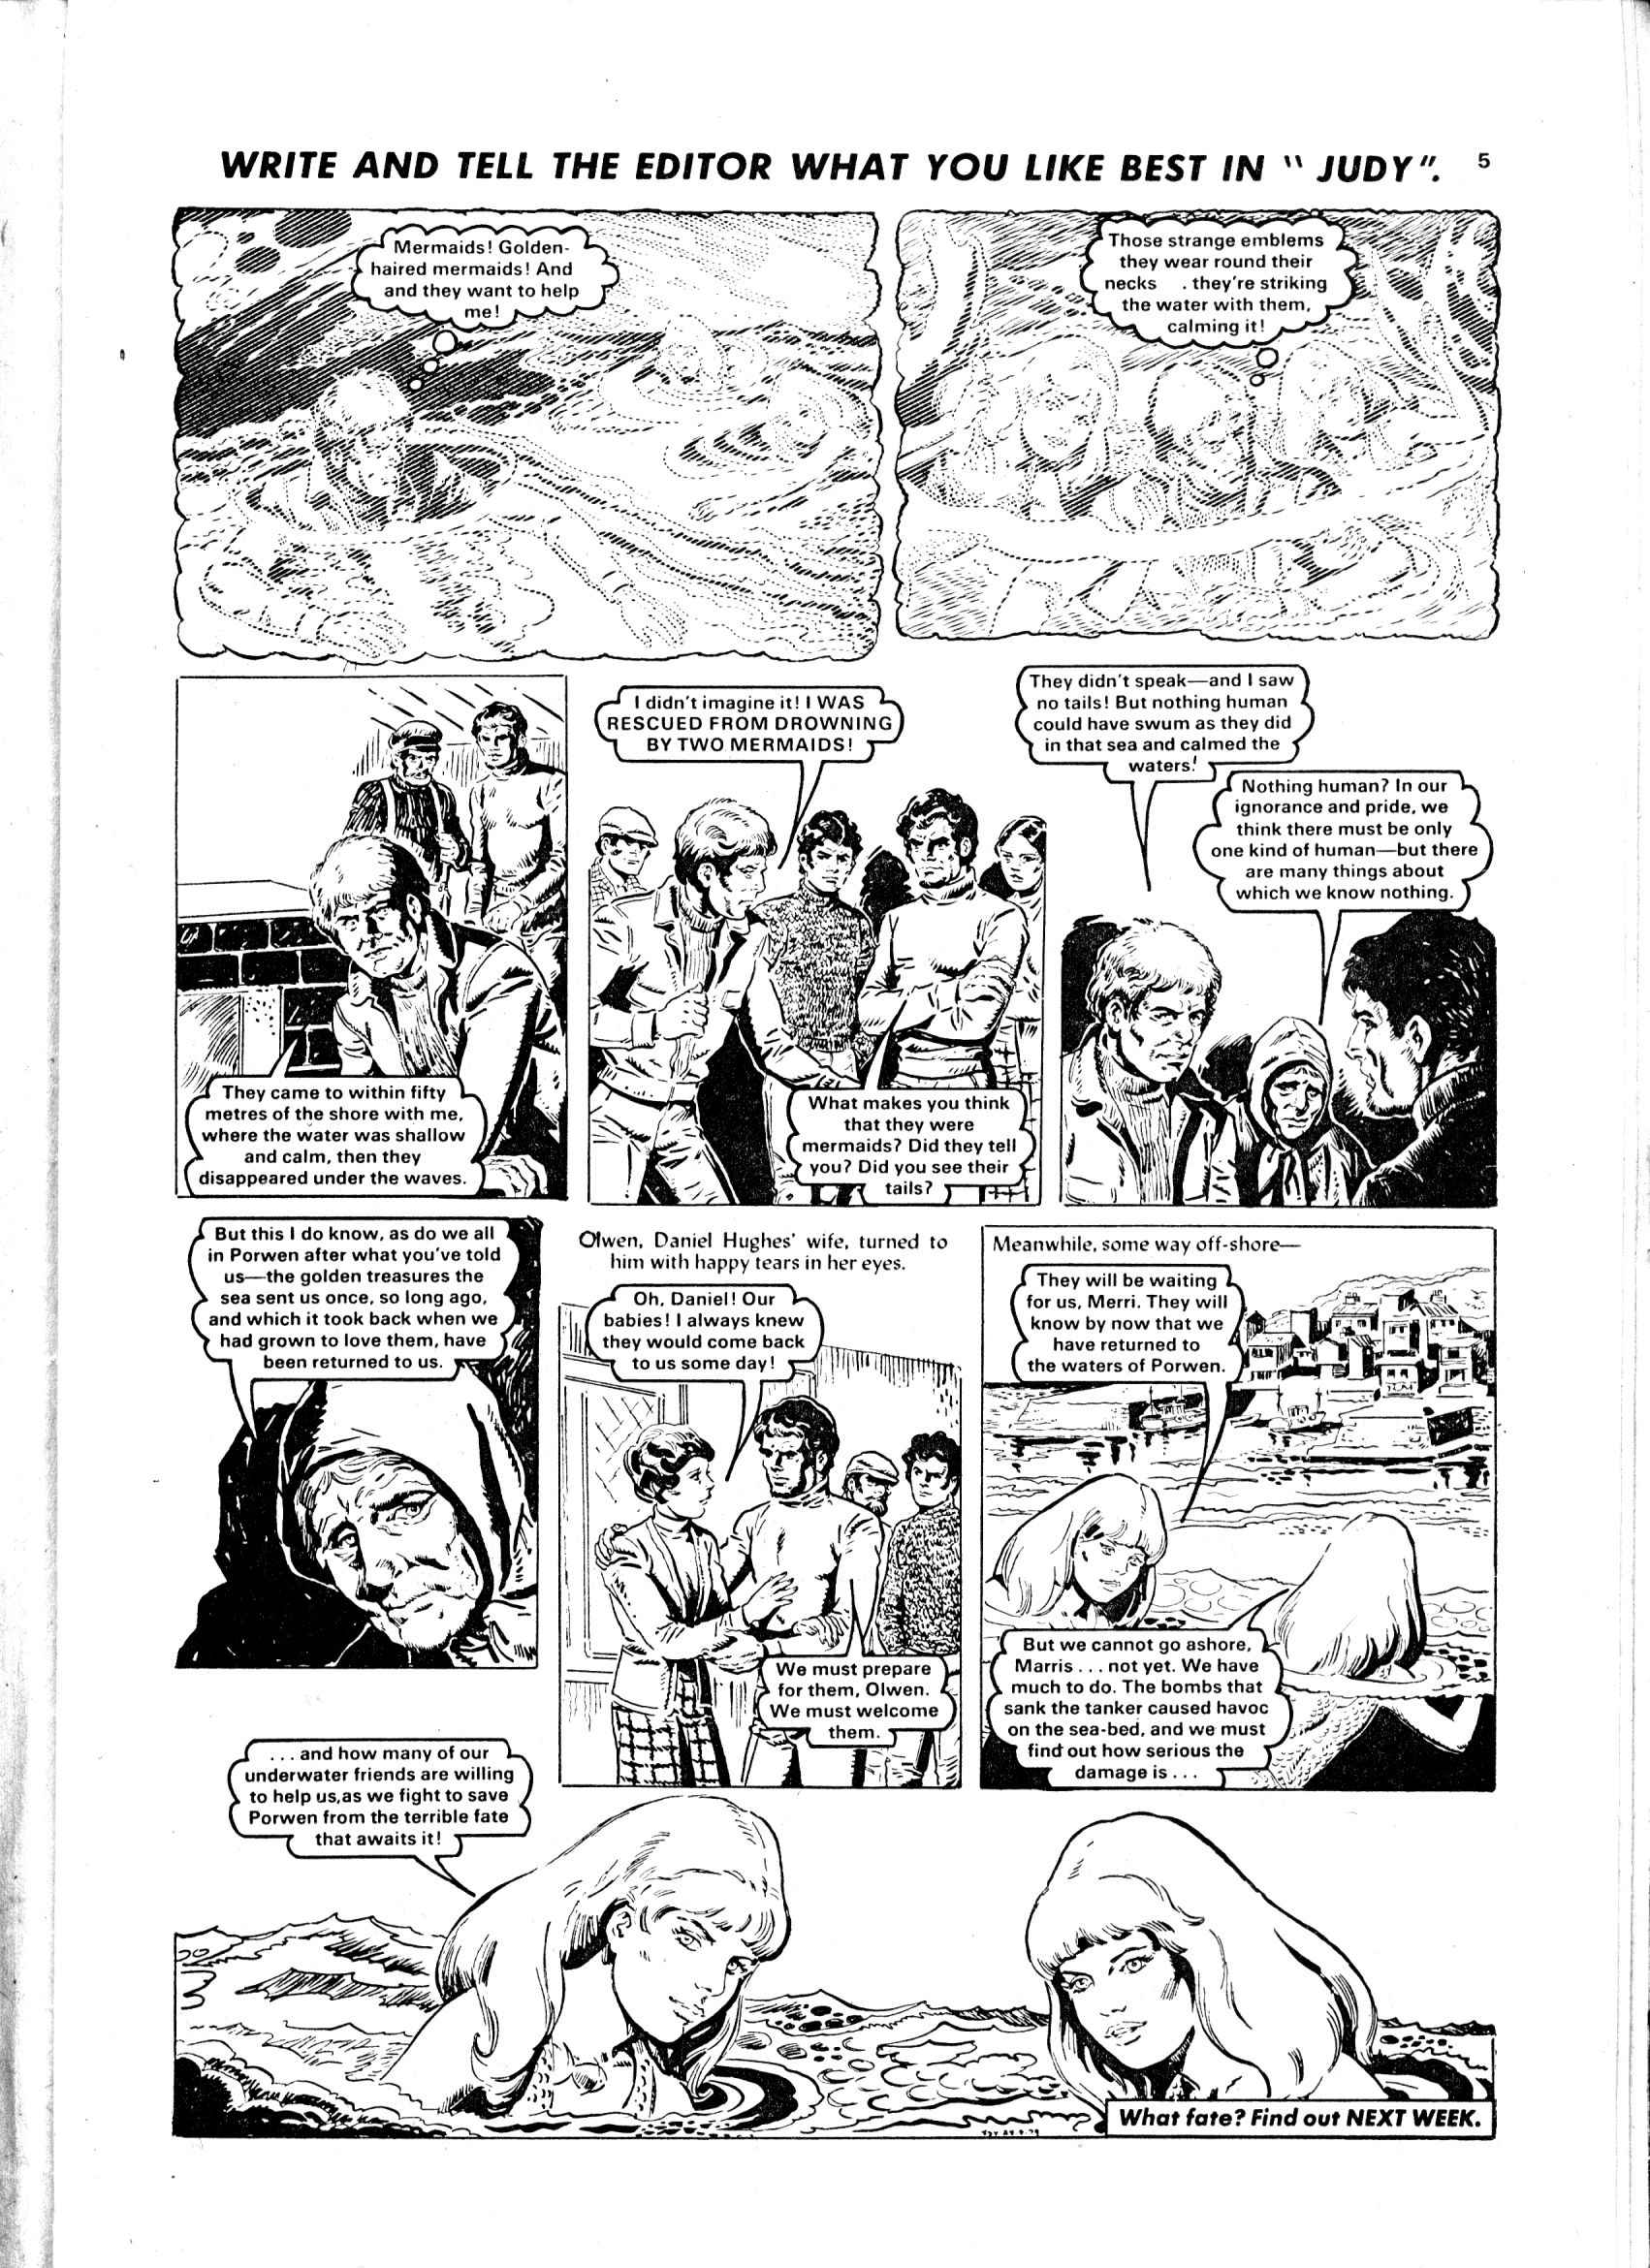 Read online Judy comic -  Issue #24 - 5